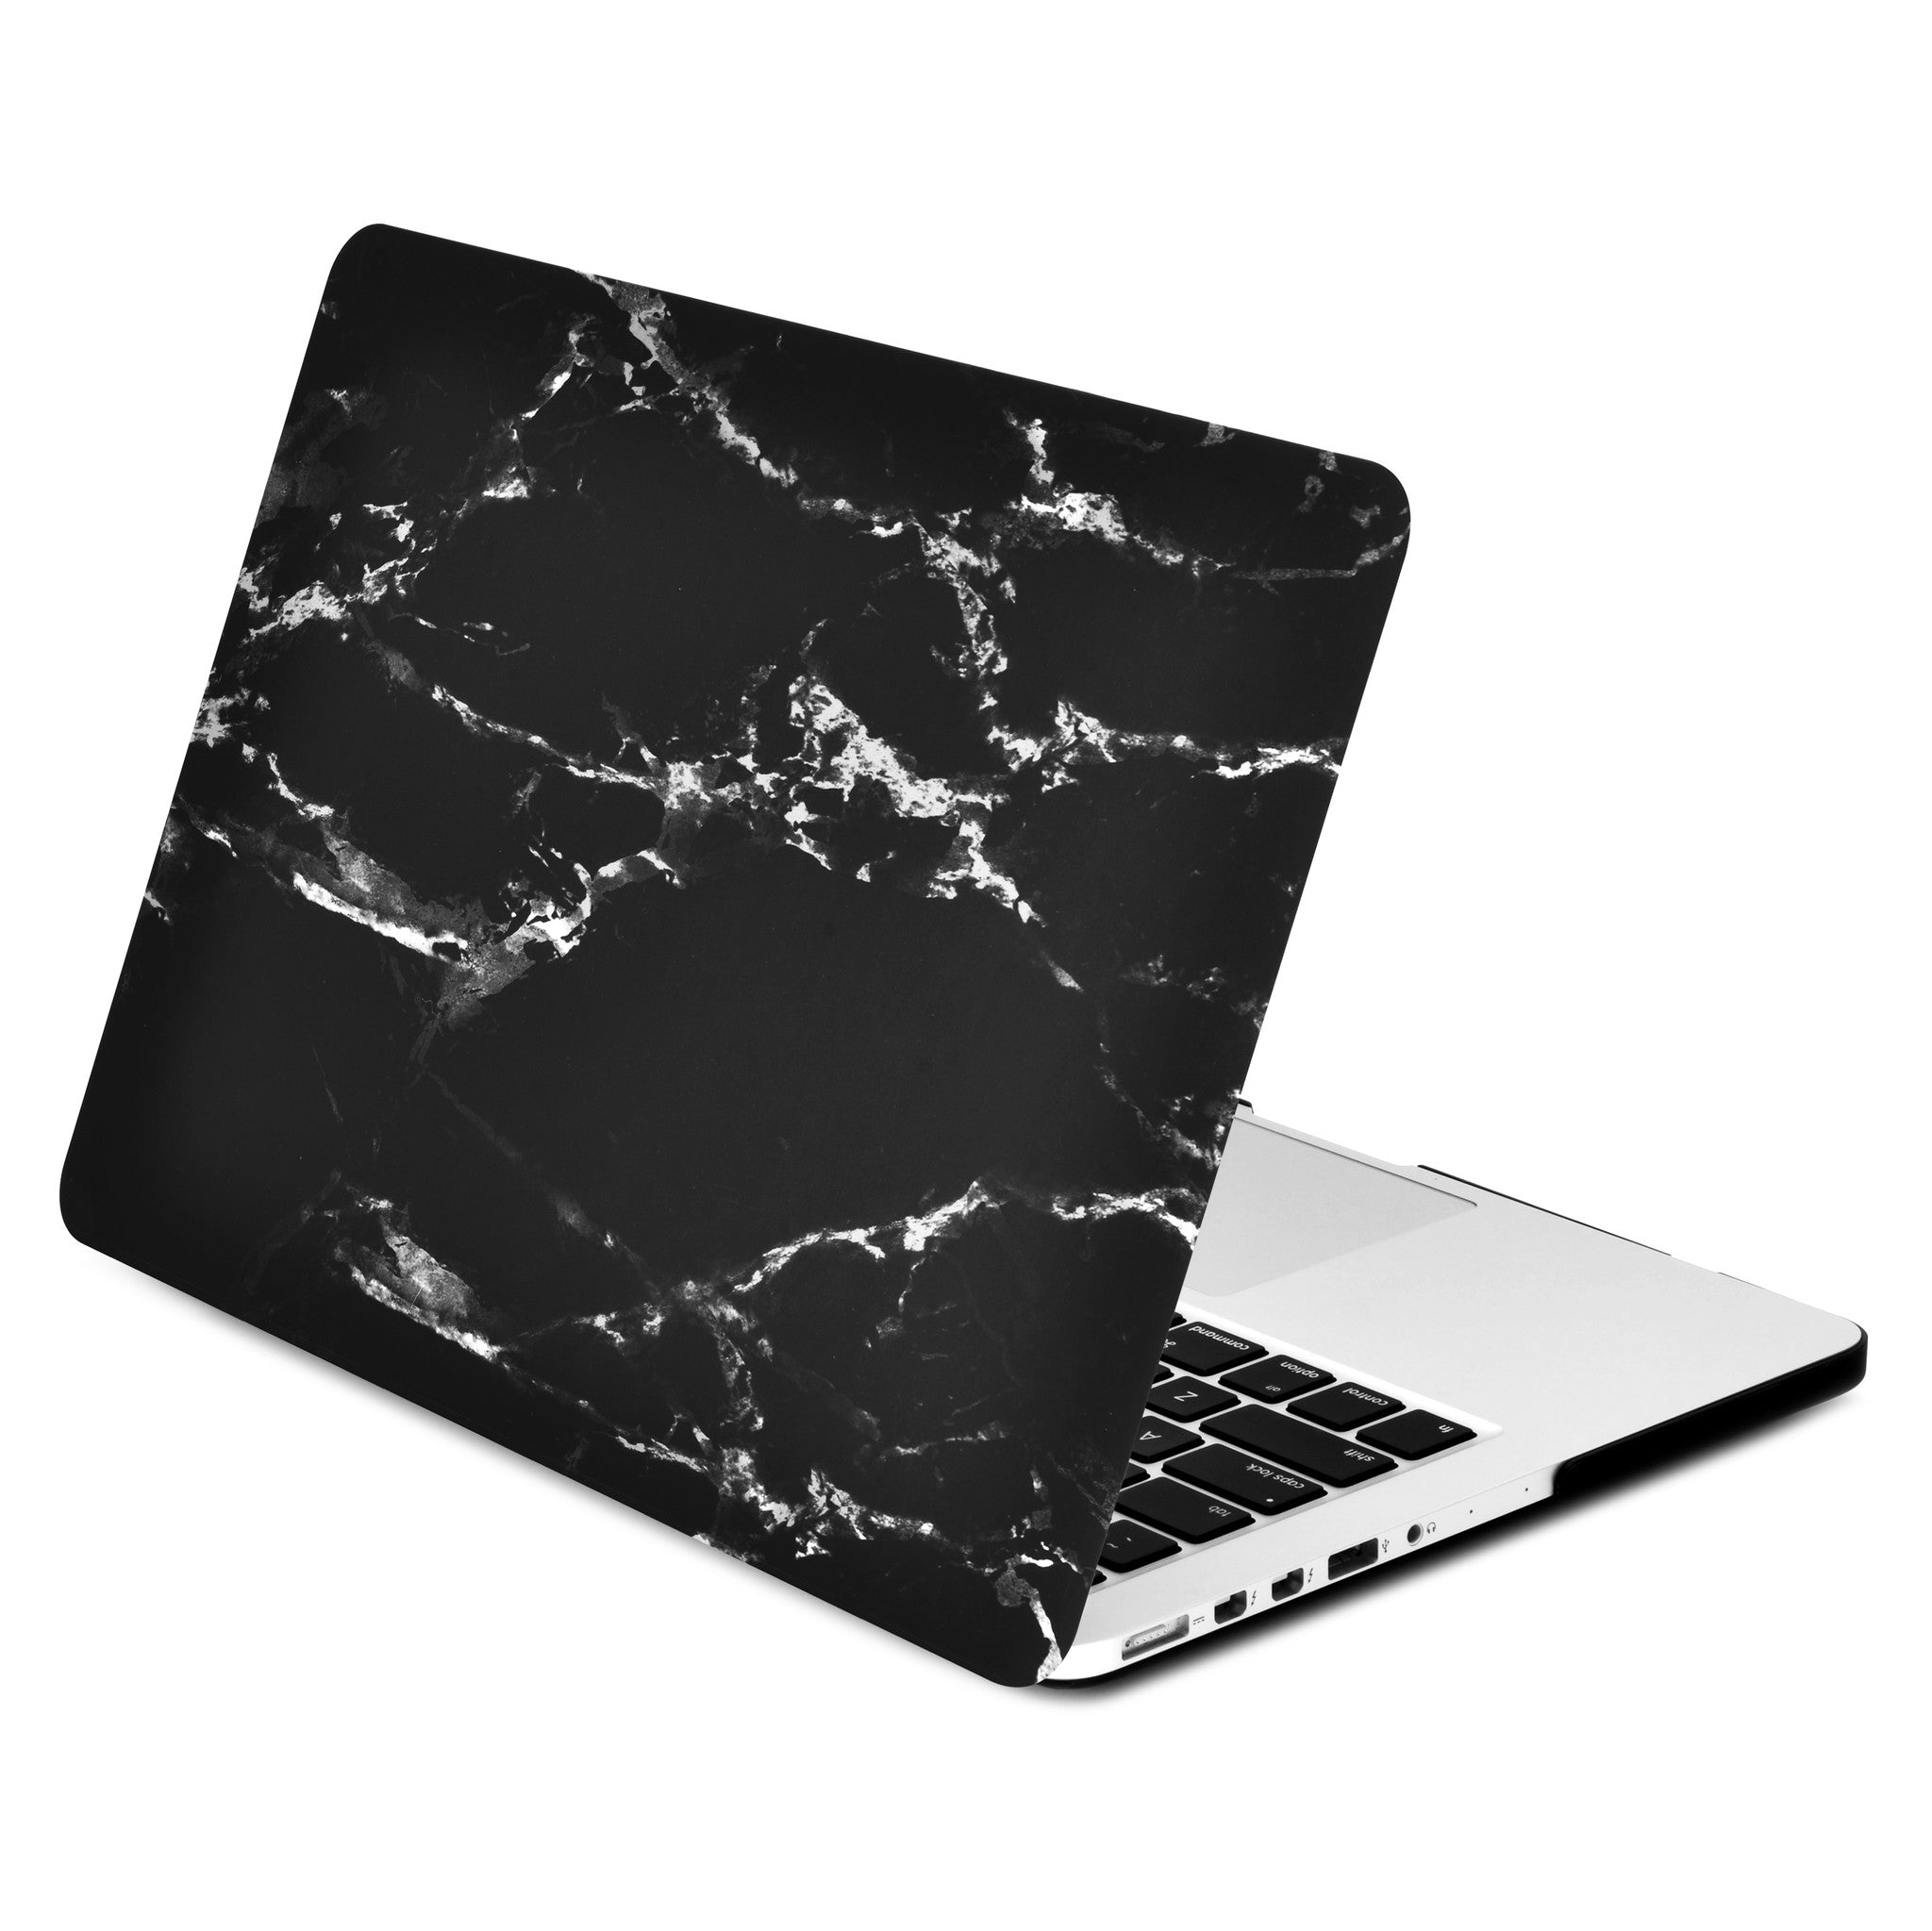 Black Marble Rubberized Hard Case For Macbook Pro 13 Quot With